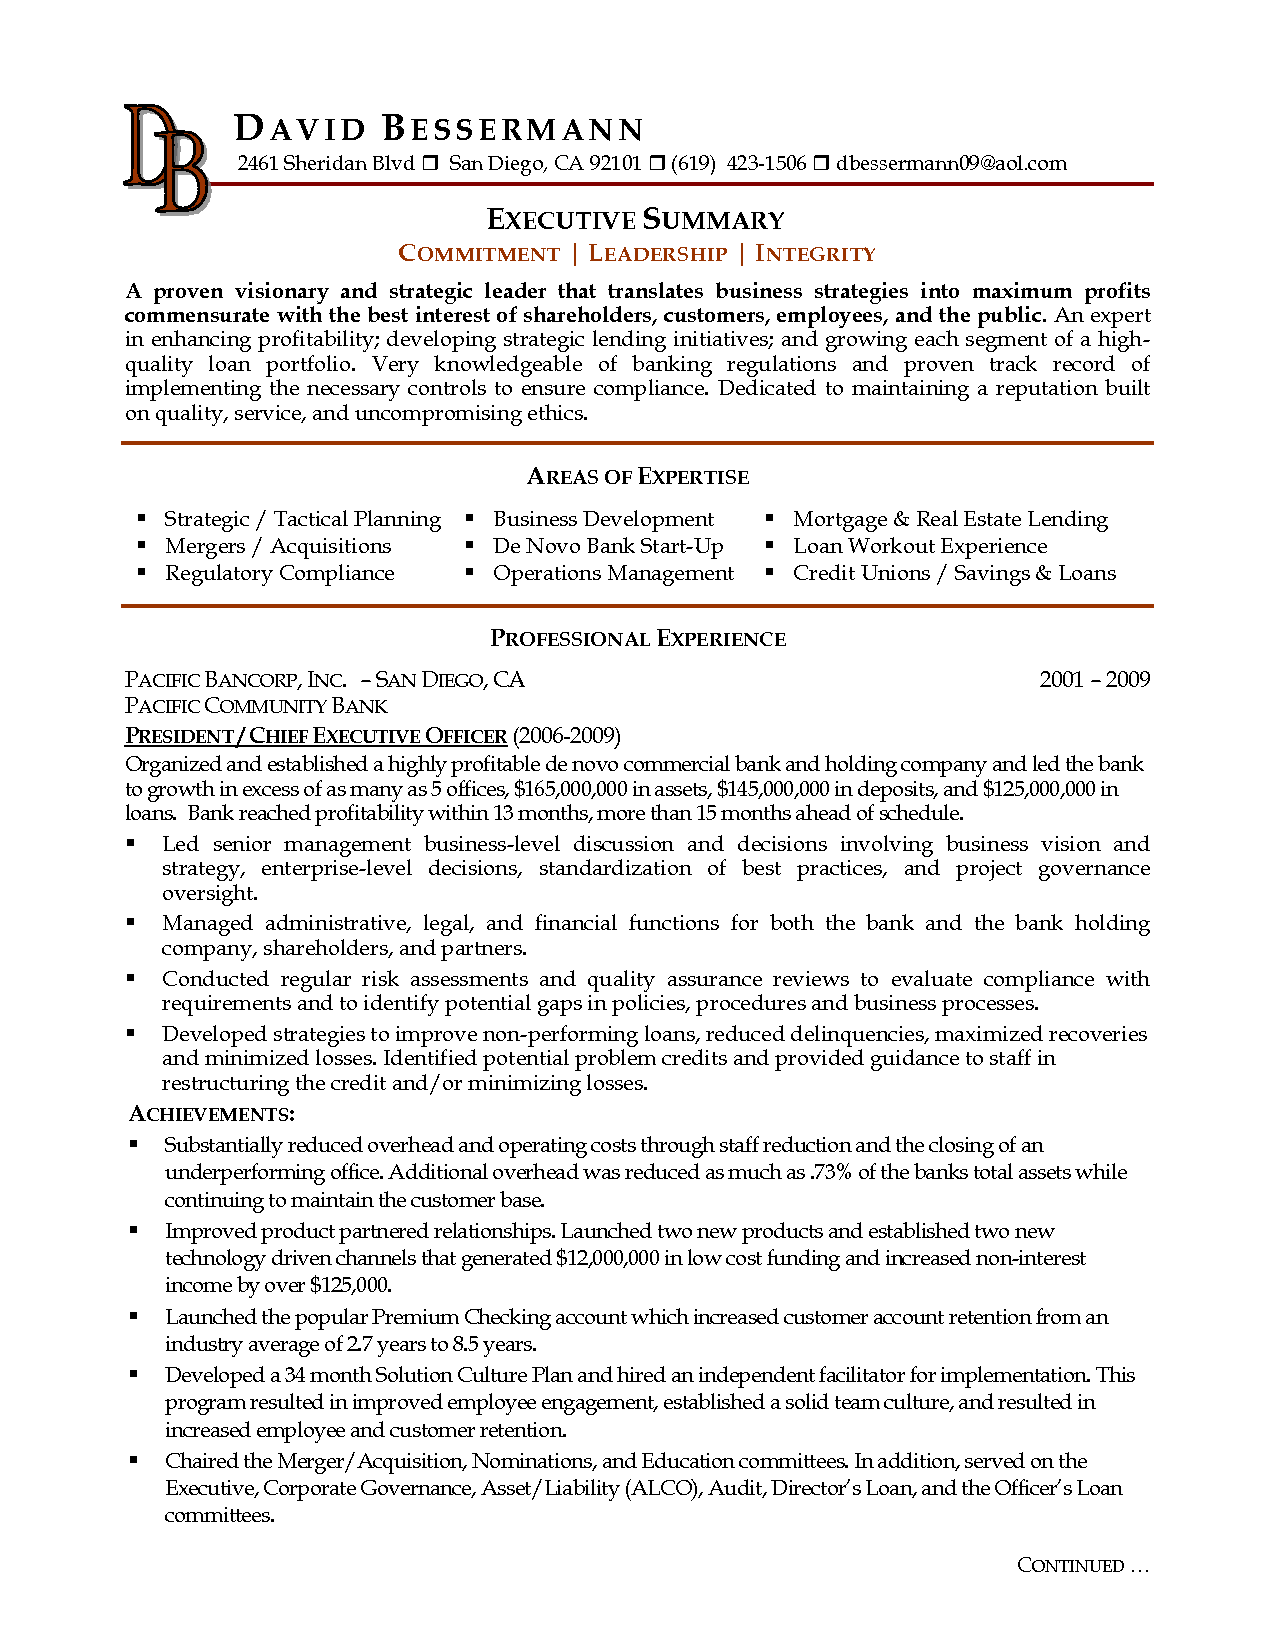 Resume Writing Template Resume Formats Format Software Samples Cover Letter Related Free